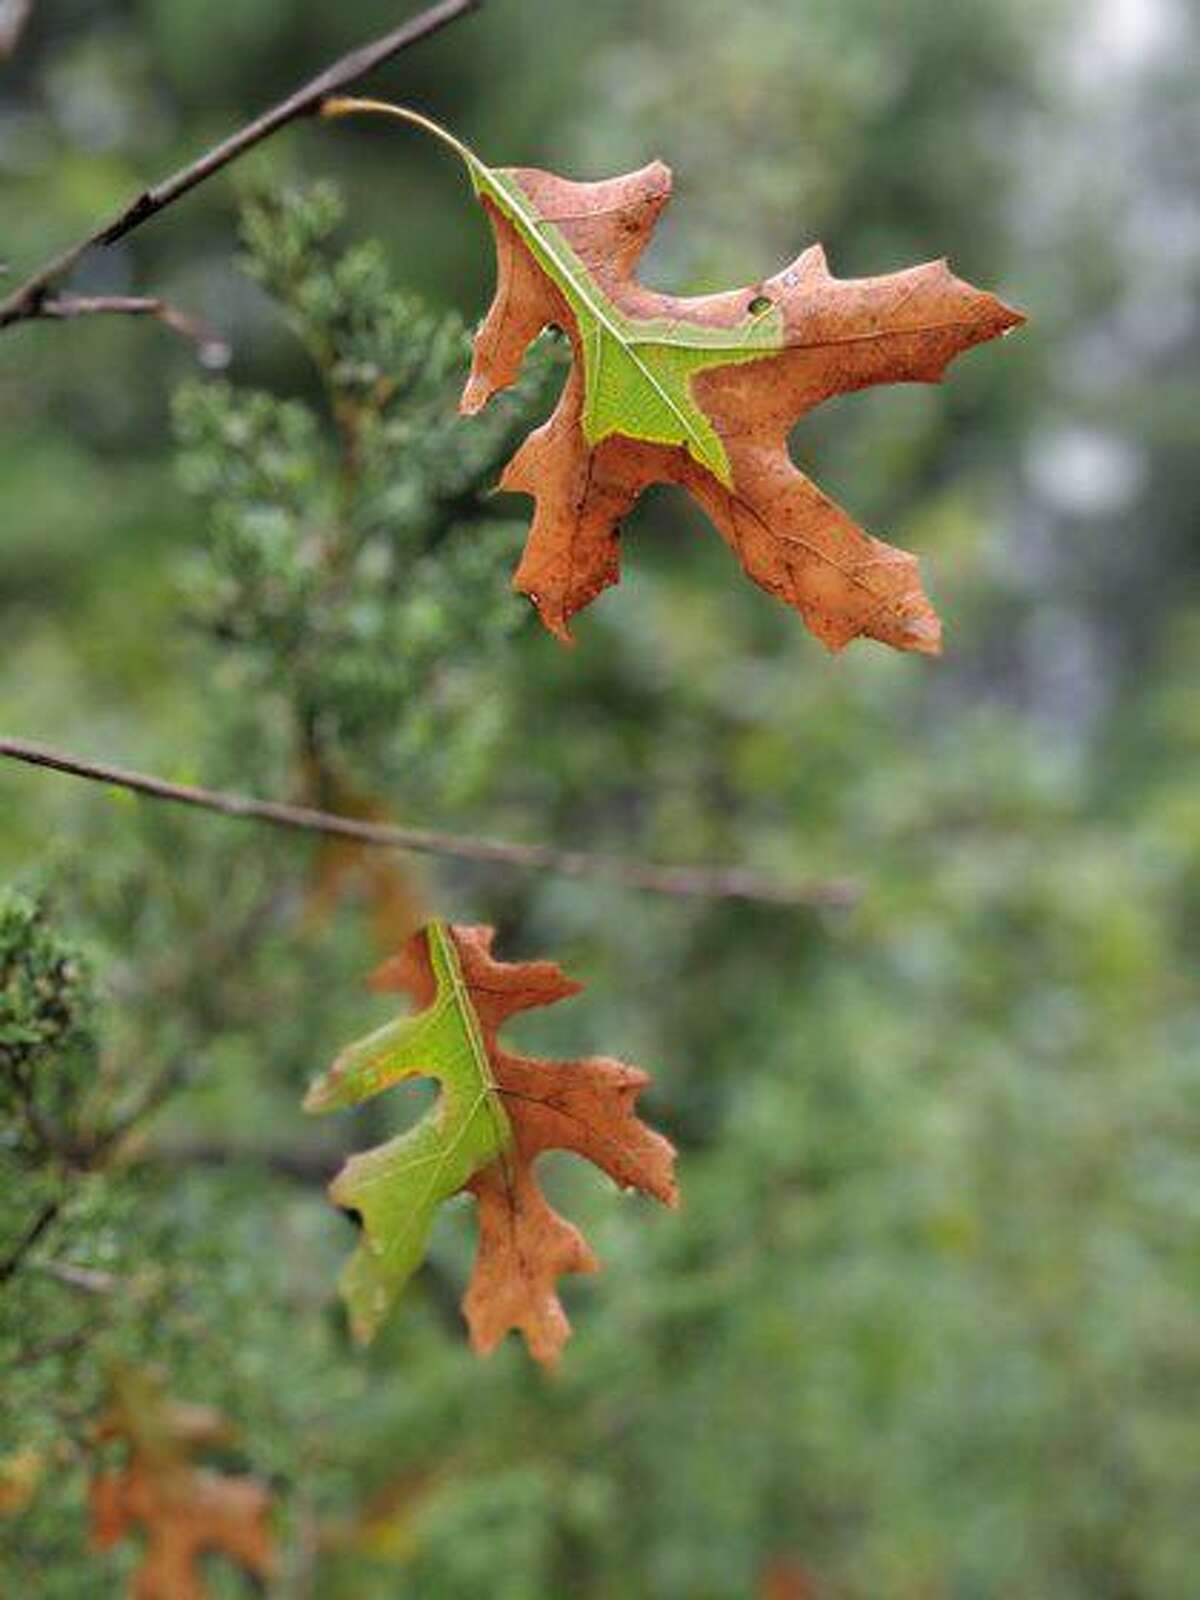 Oak leaves turn brown when the tree is infected with the oak wilt fungus.